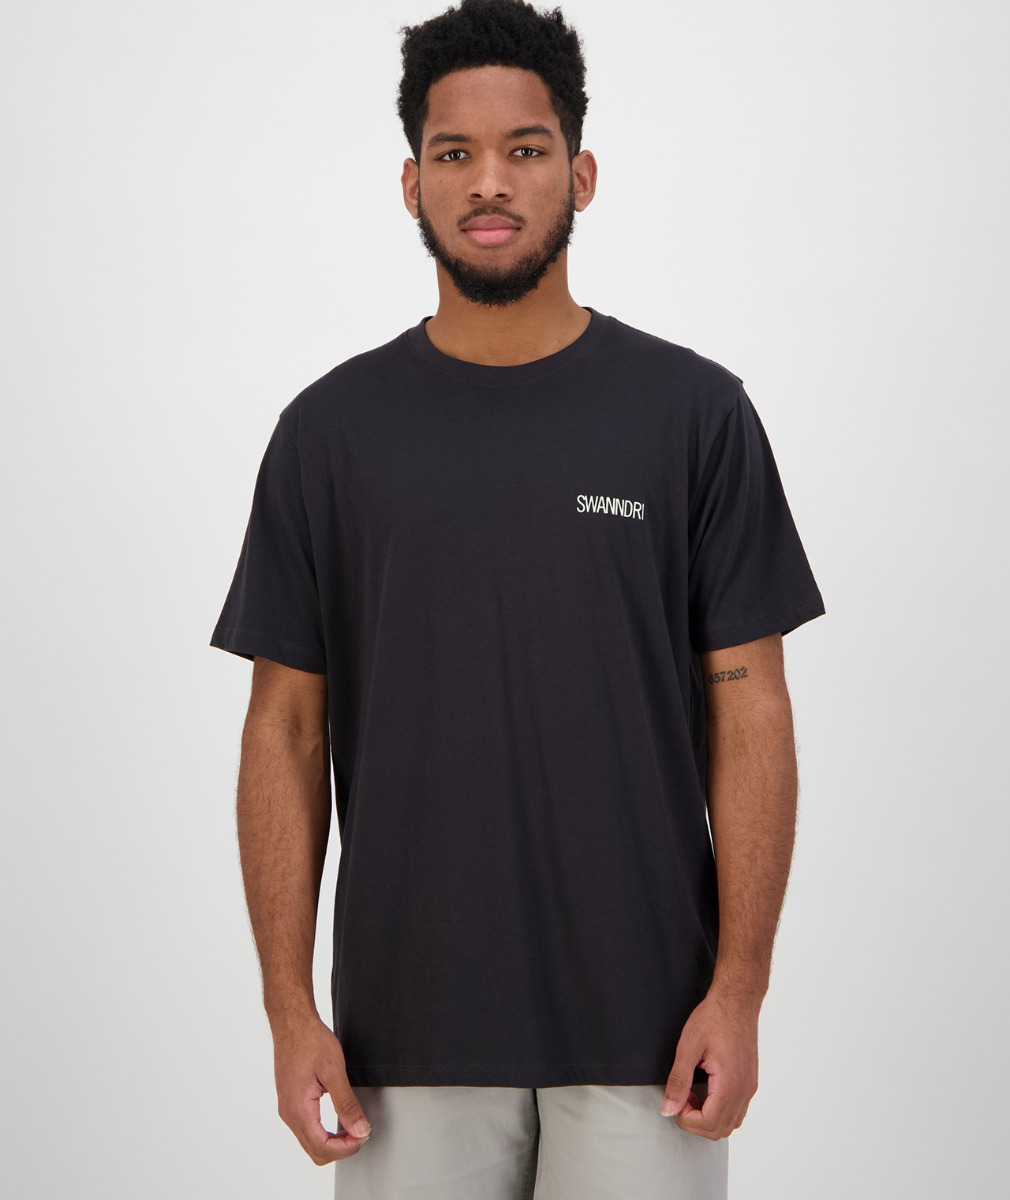 Swanndri Men's The Alps Print Tee in Washed Black/White